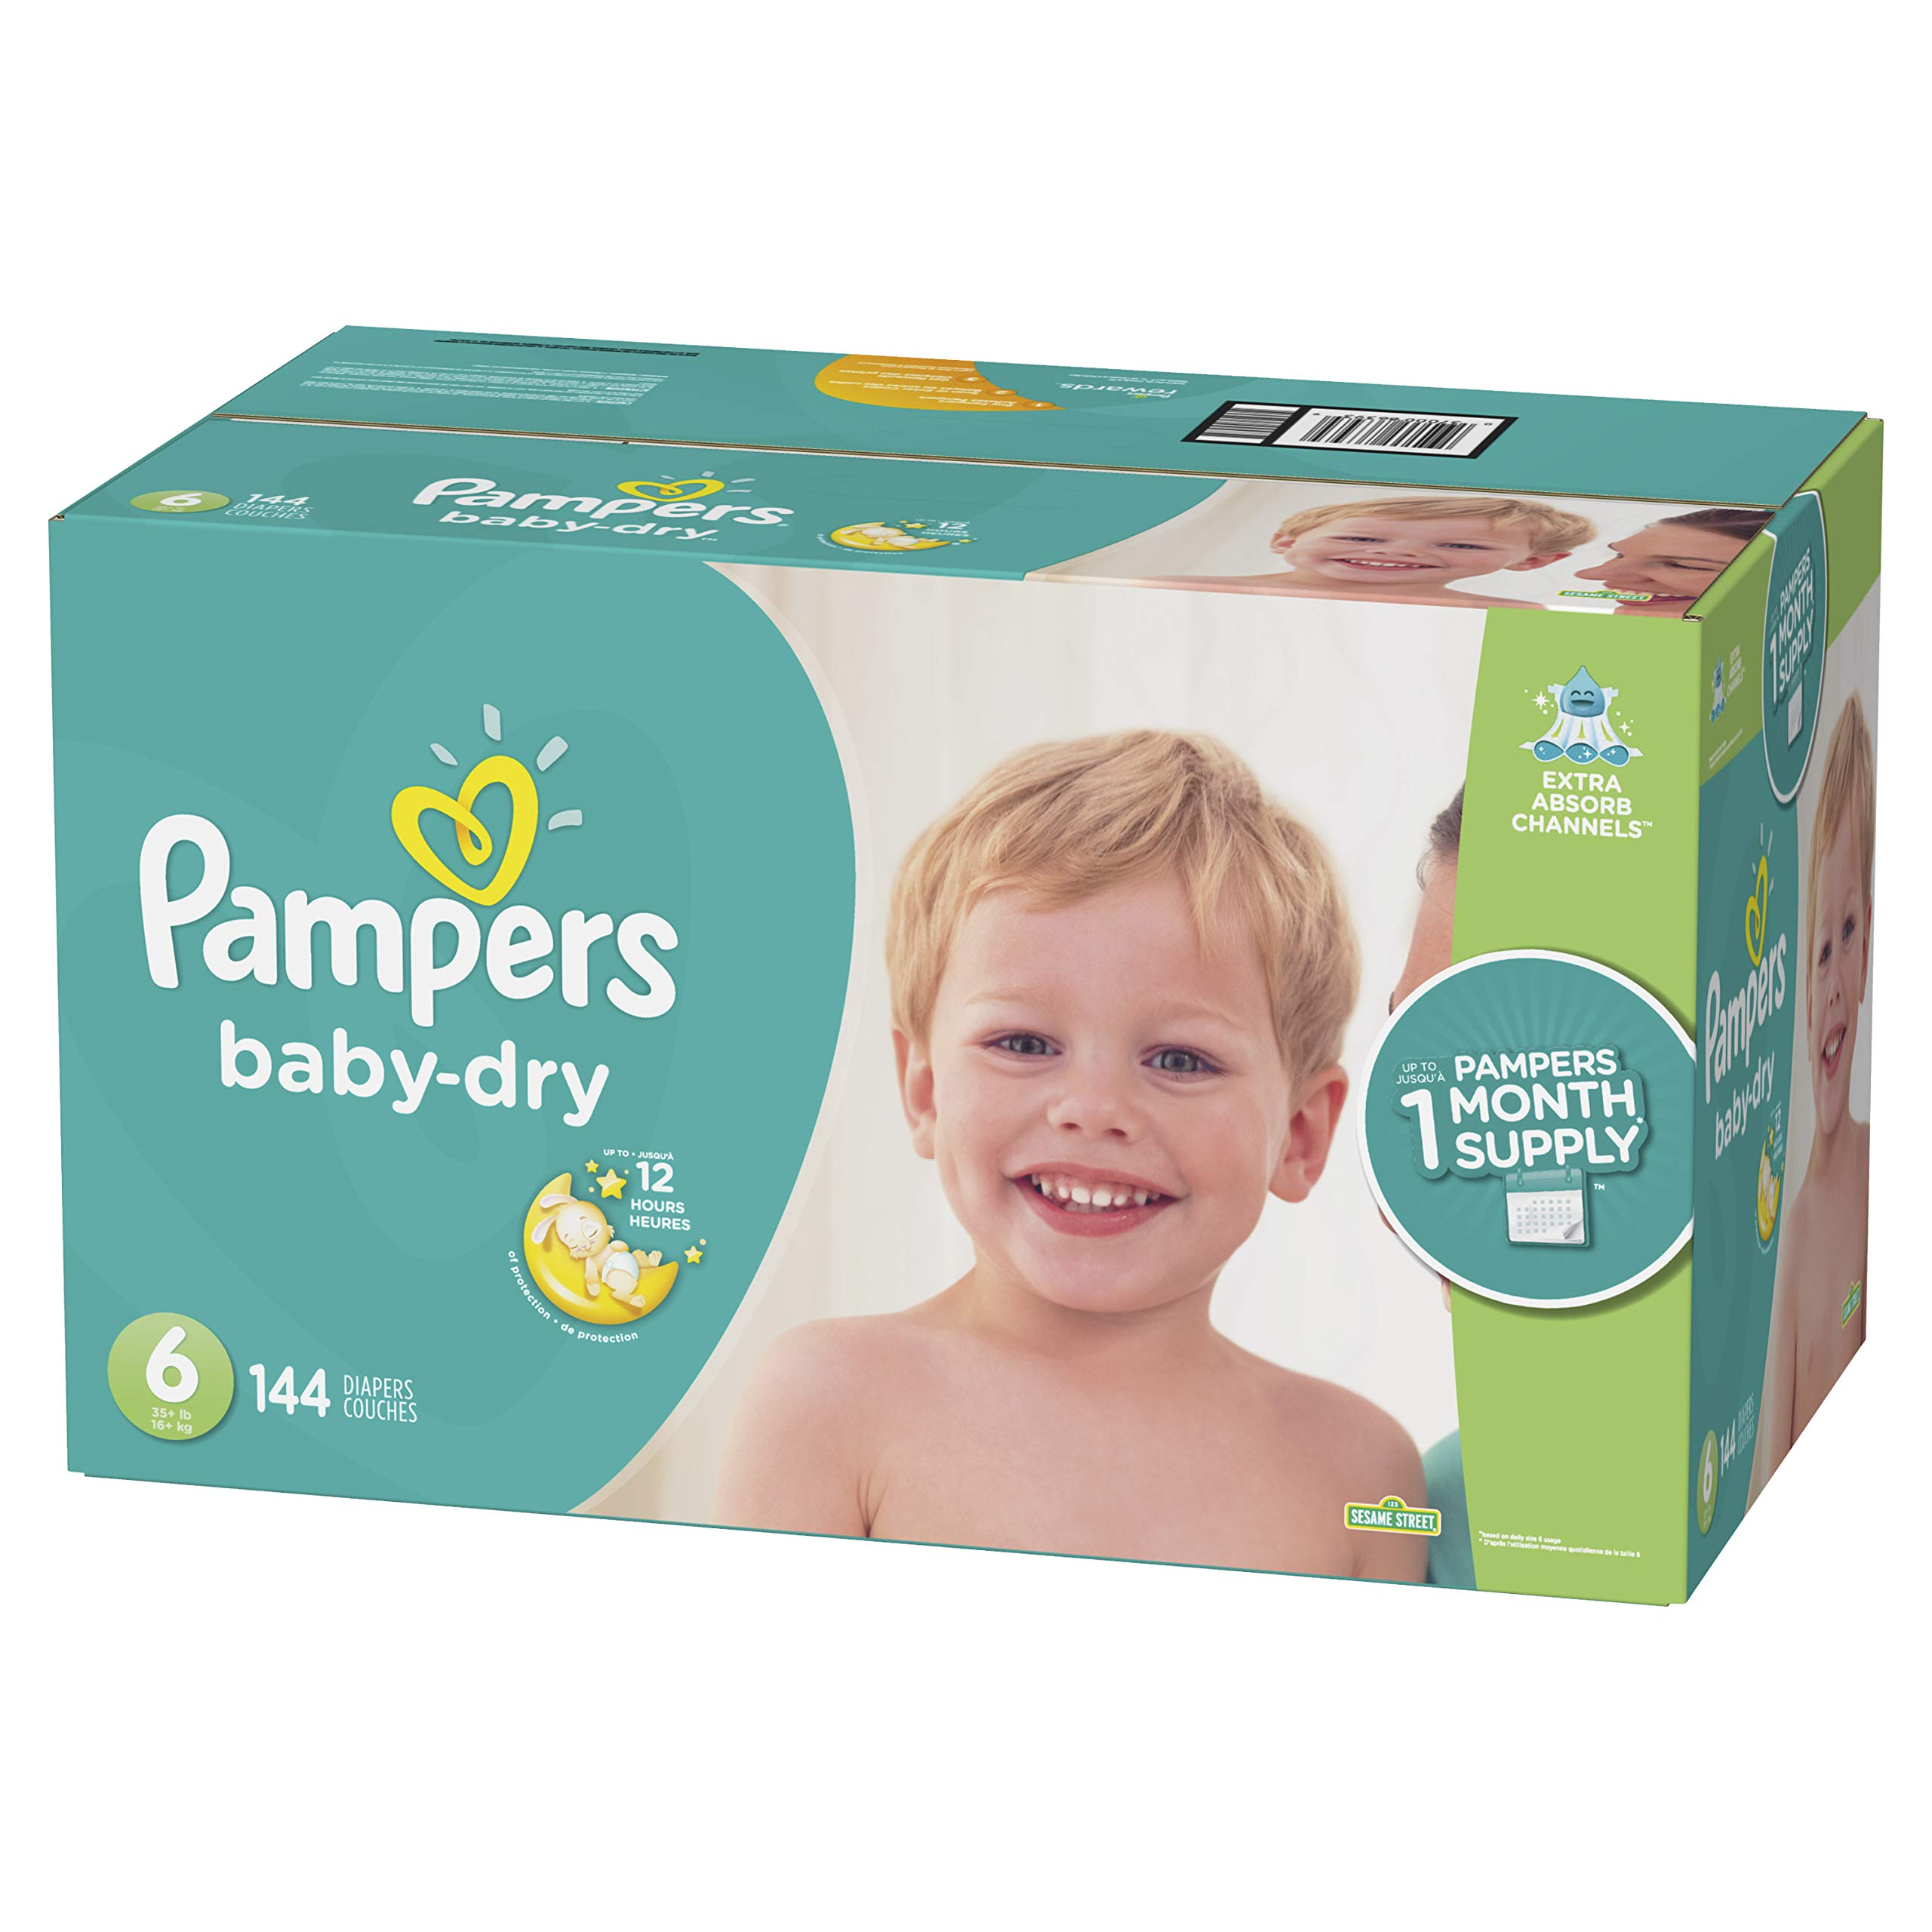 Diapers Size 6, 144 Count - Pampers Baby Dry Disposable Baby Diapers, ONE MONTH SUPPLY by Pampers